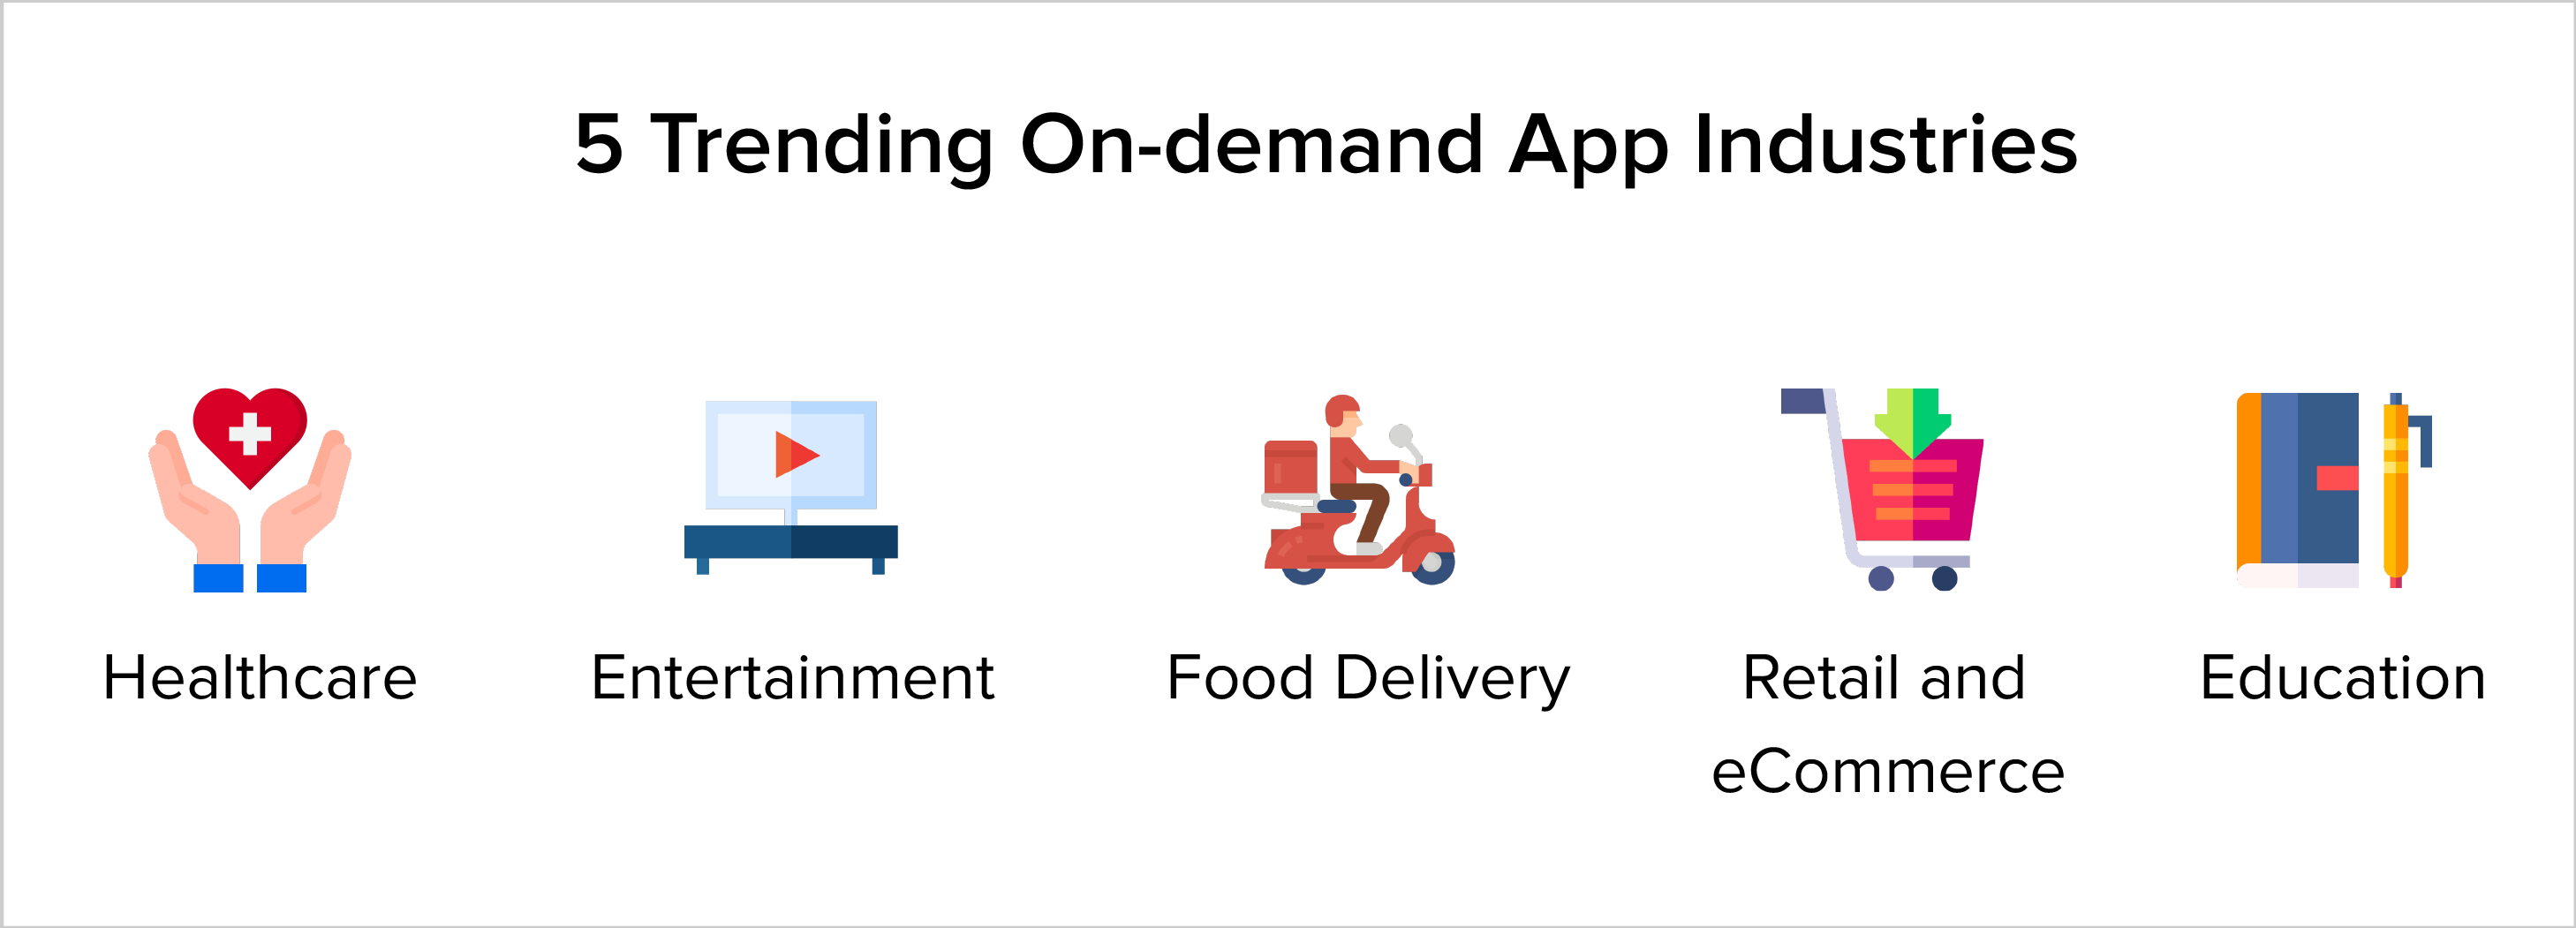 Top 5 industries driving the On-demand App economy